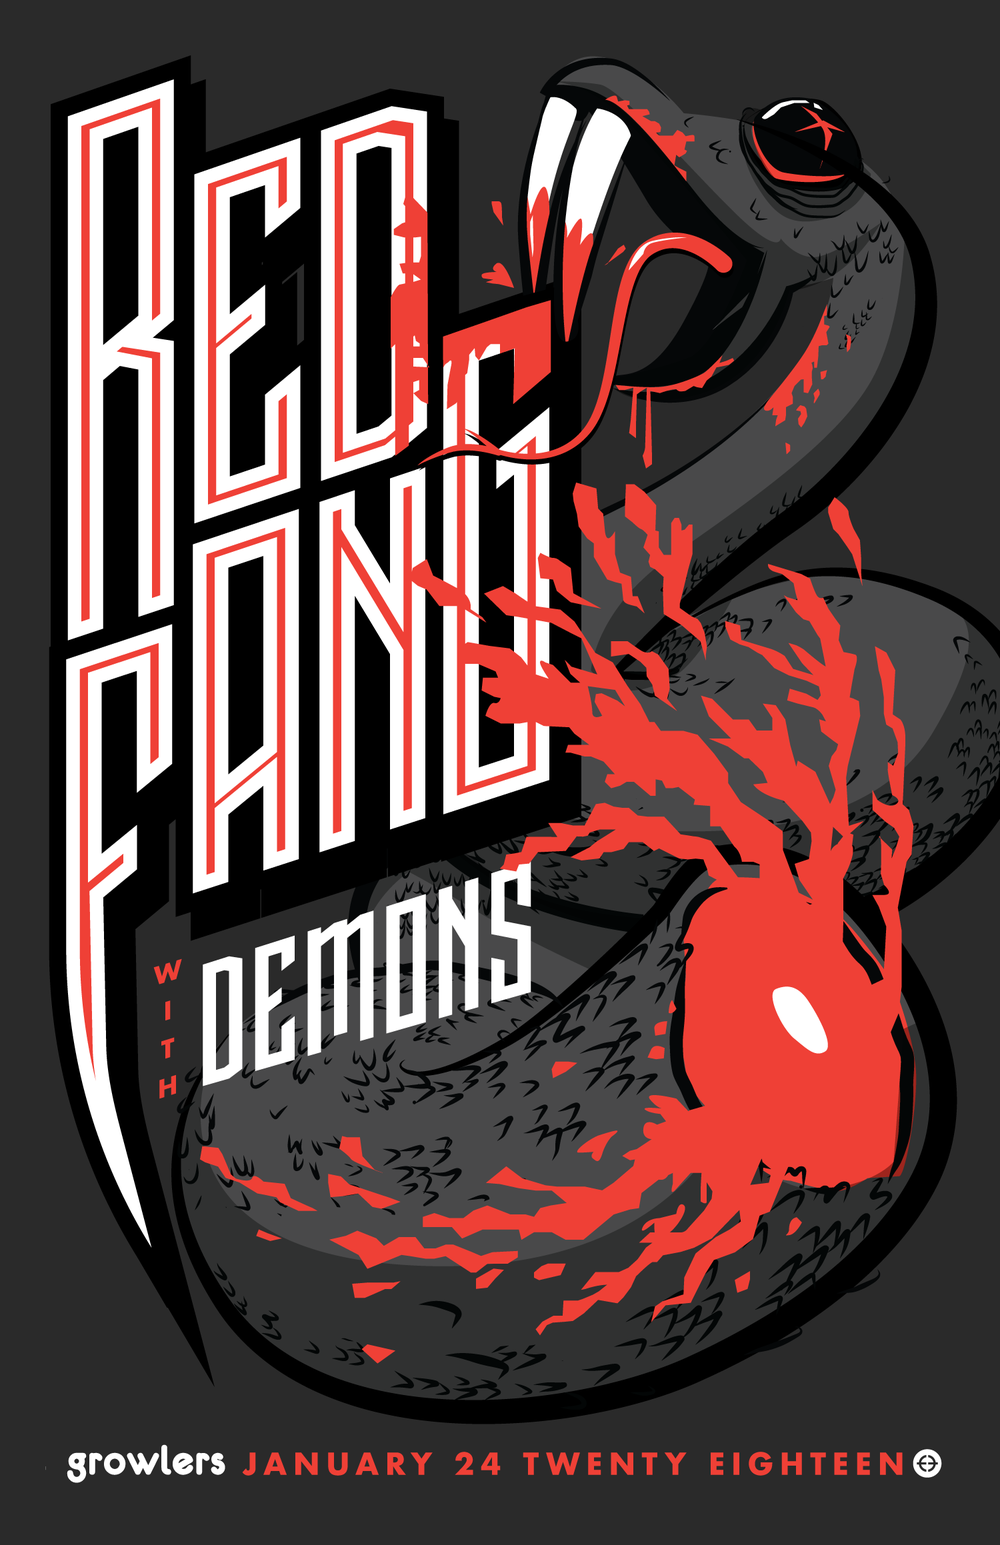 Red Fang with Demons at Growlers, Jan 2018